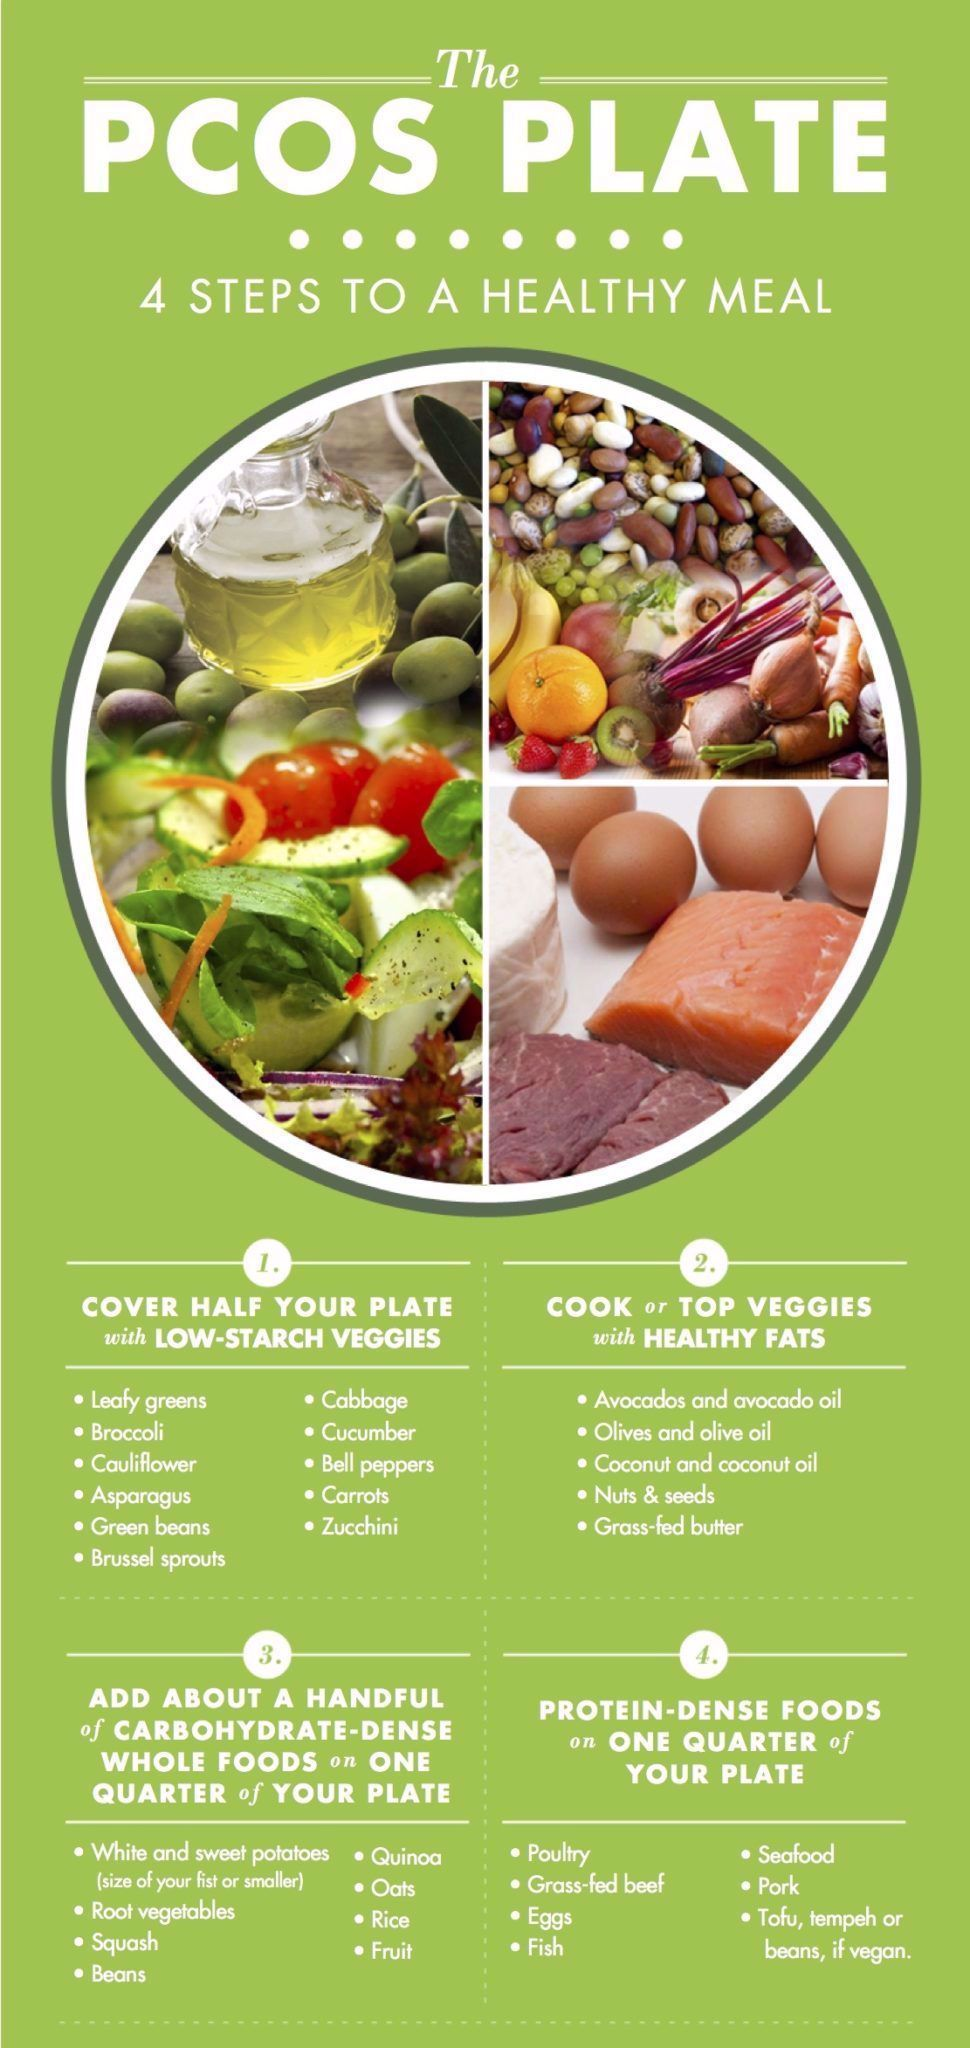 keto diet for pcos meal plan